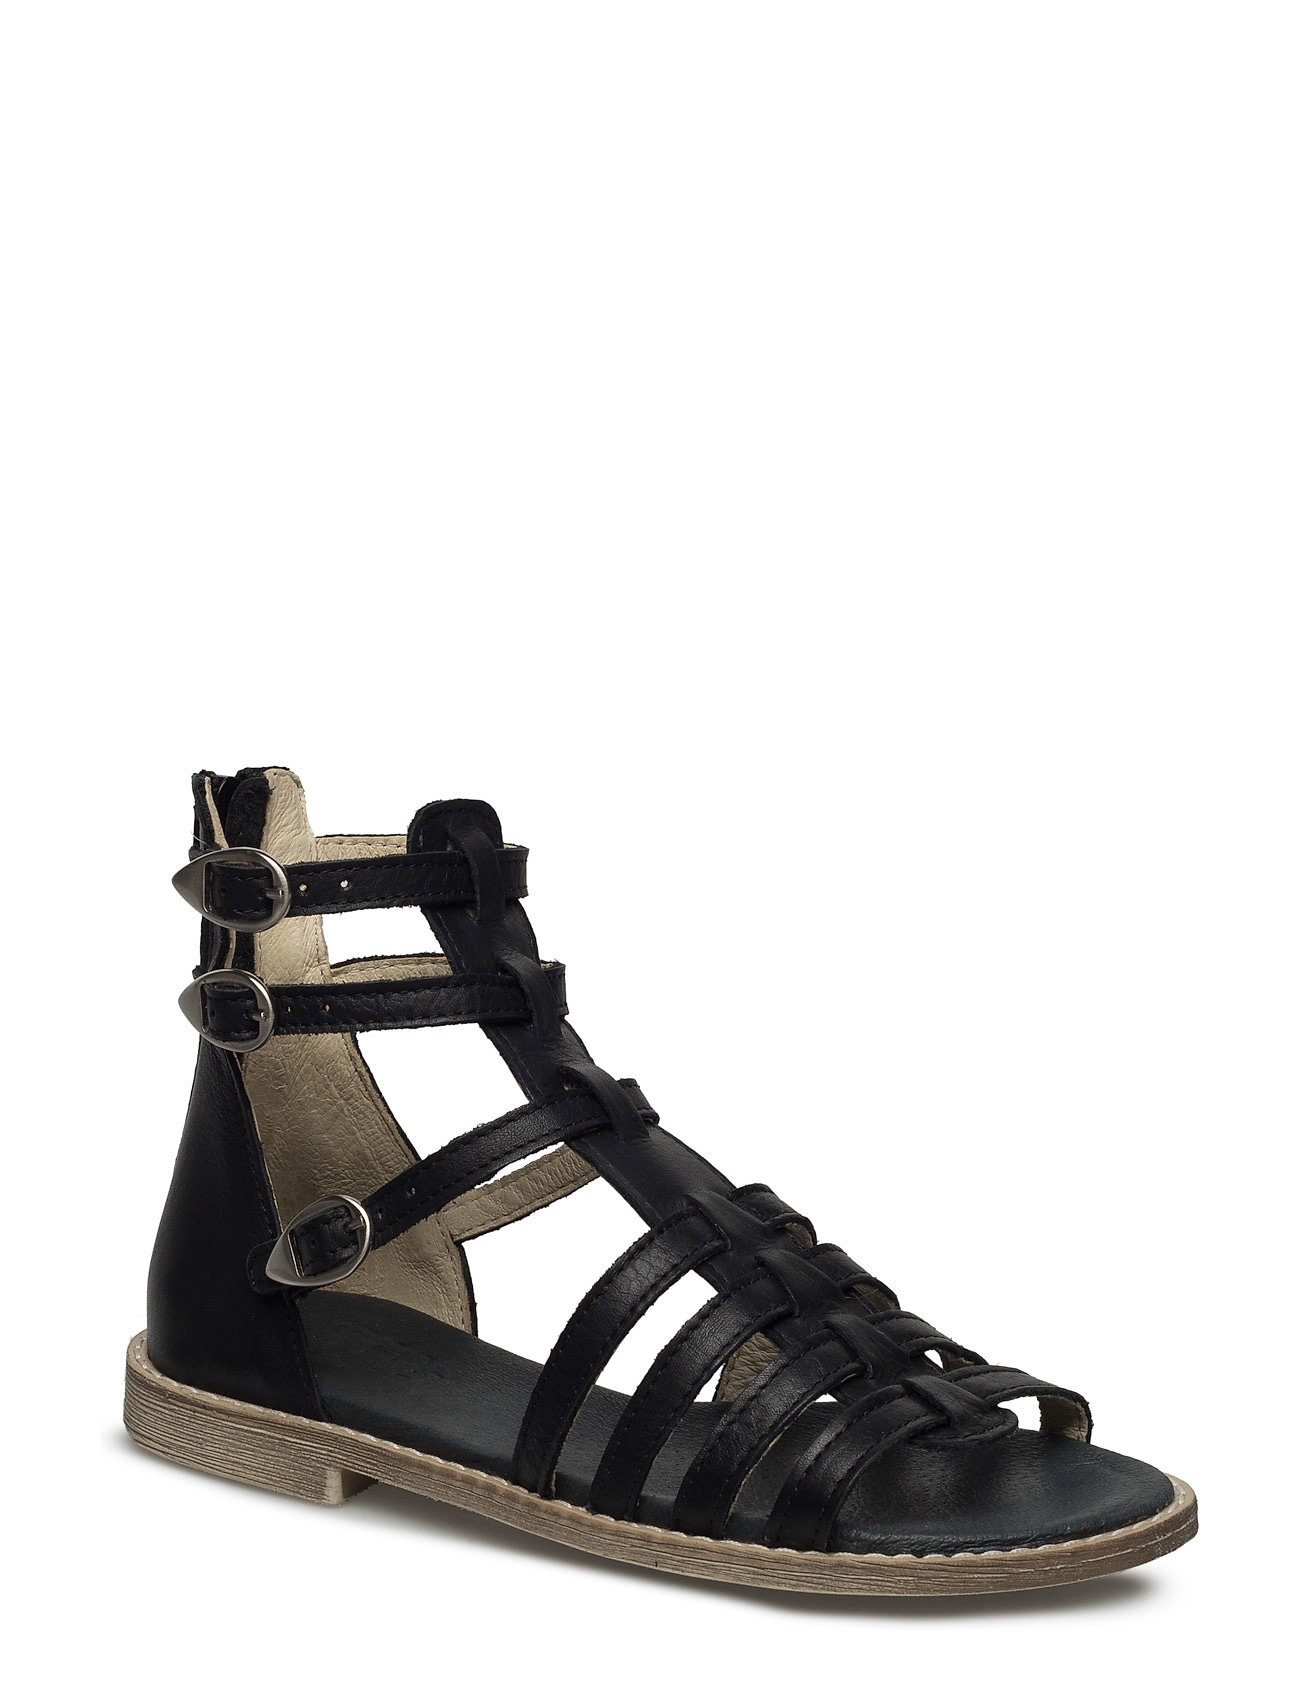 Arauto RAP ECOLOGICAL GLADIATOR SANDAL, SUPER SOFT SOLE